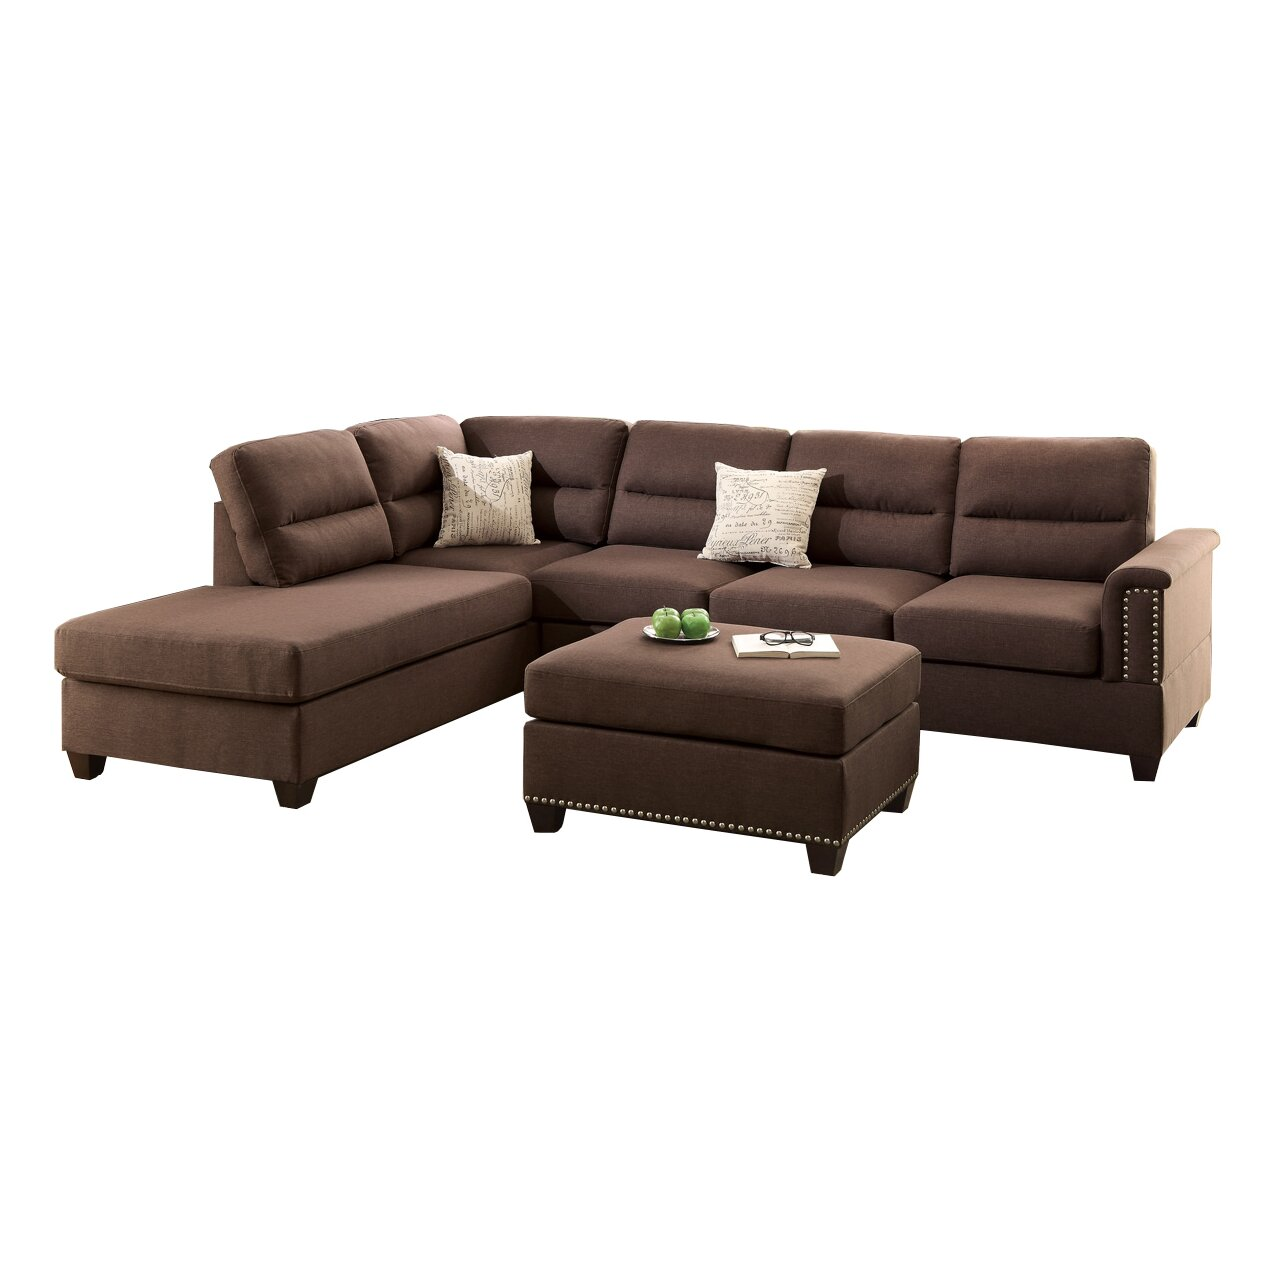 Poundex Bobkona Toffy Reversible Chaise Sectional